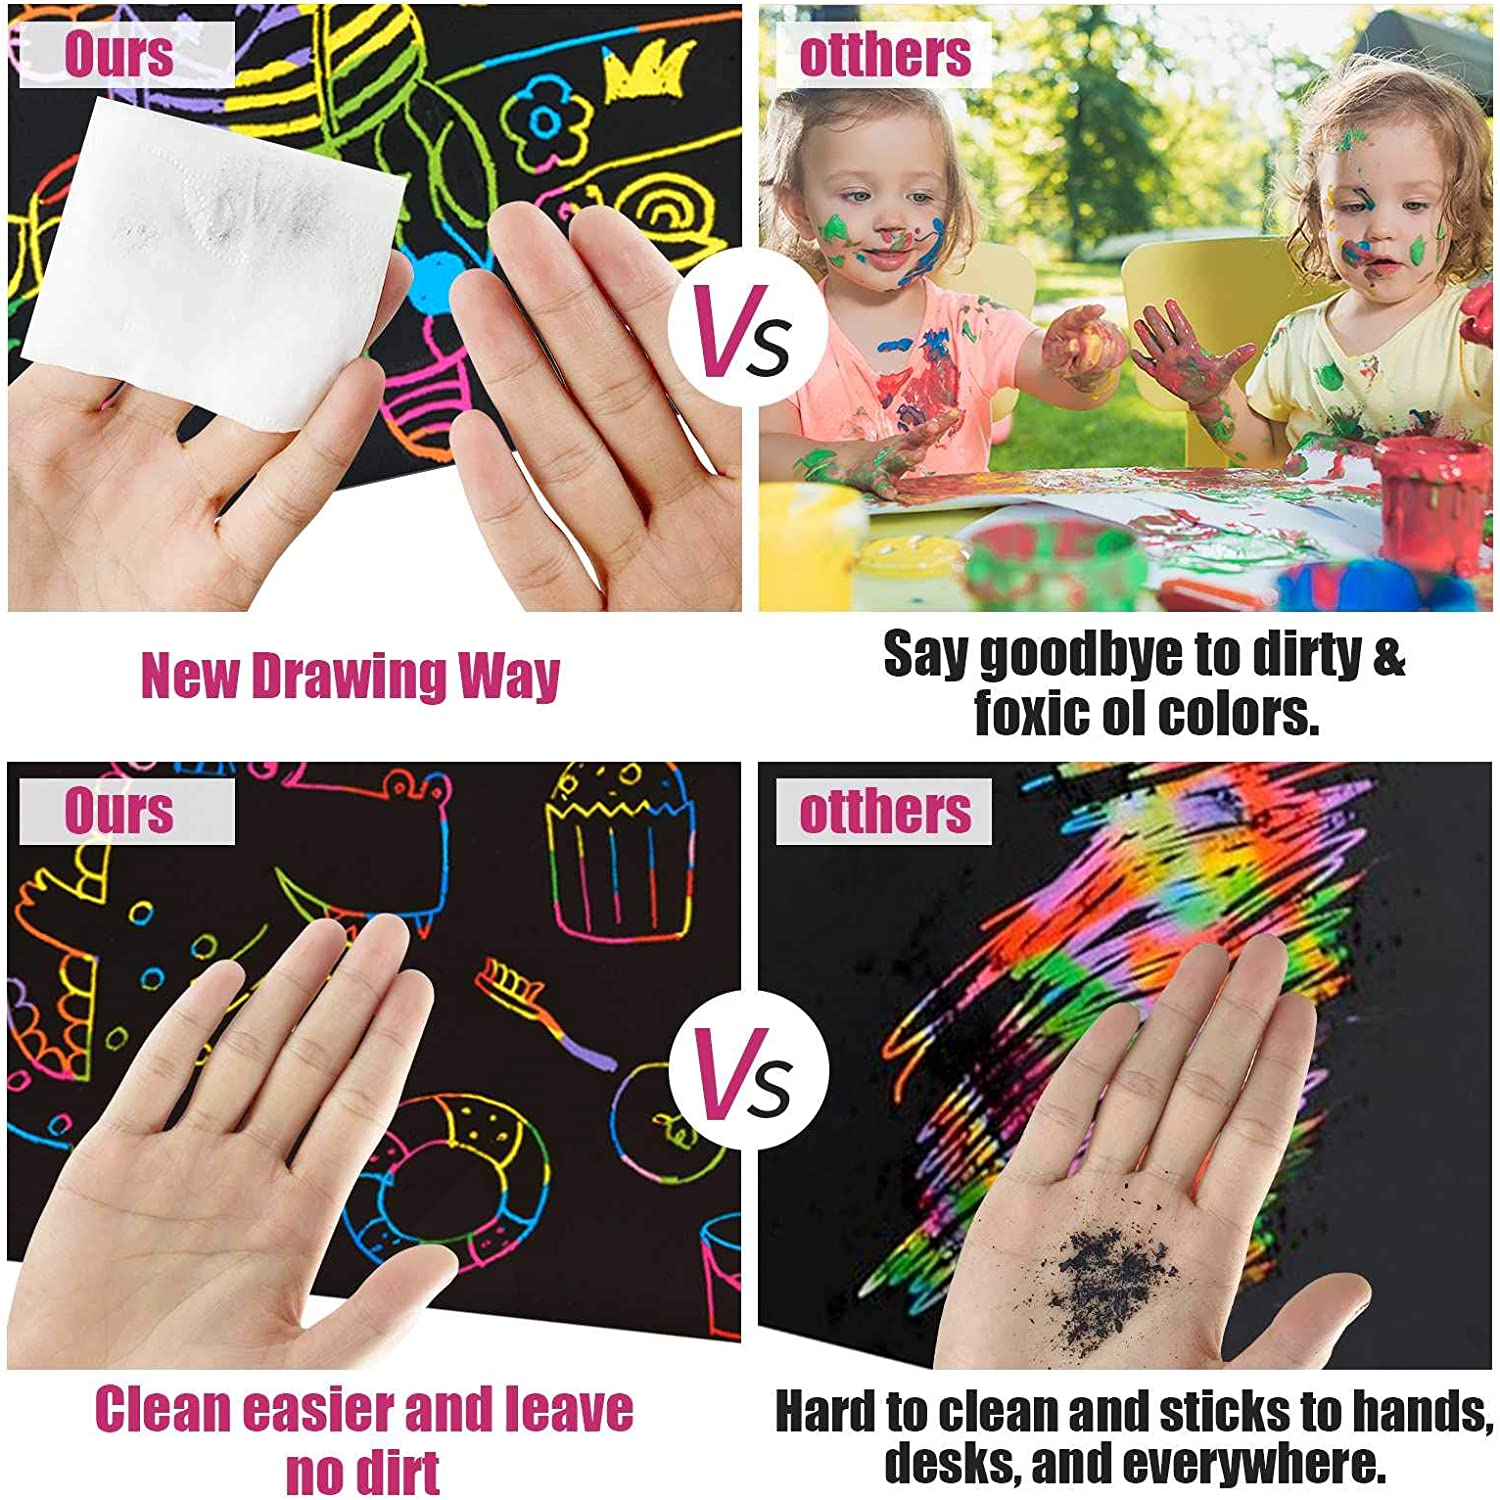 with 5 PCS Wooden Stylus /& Dinosaur stickers Scratch Paper Art Set Rainbow scratch paper Black Kids Birthday Gifts for Party Childrens Day Halloween Christmas 50 PCS Rainbow Magic Scratch Paper